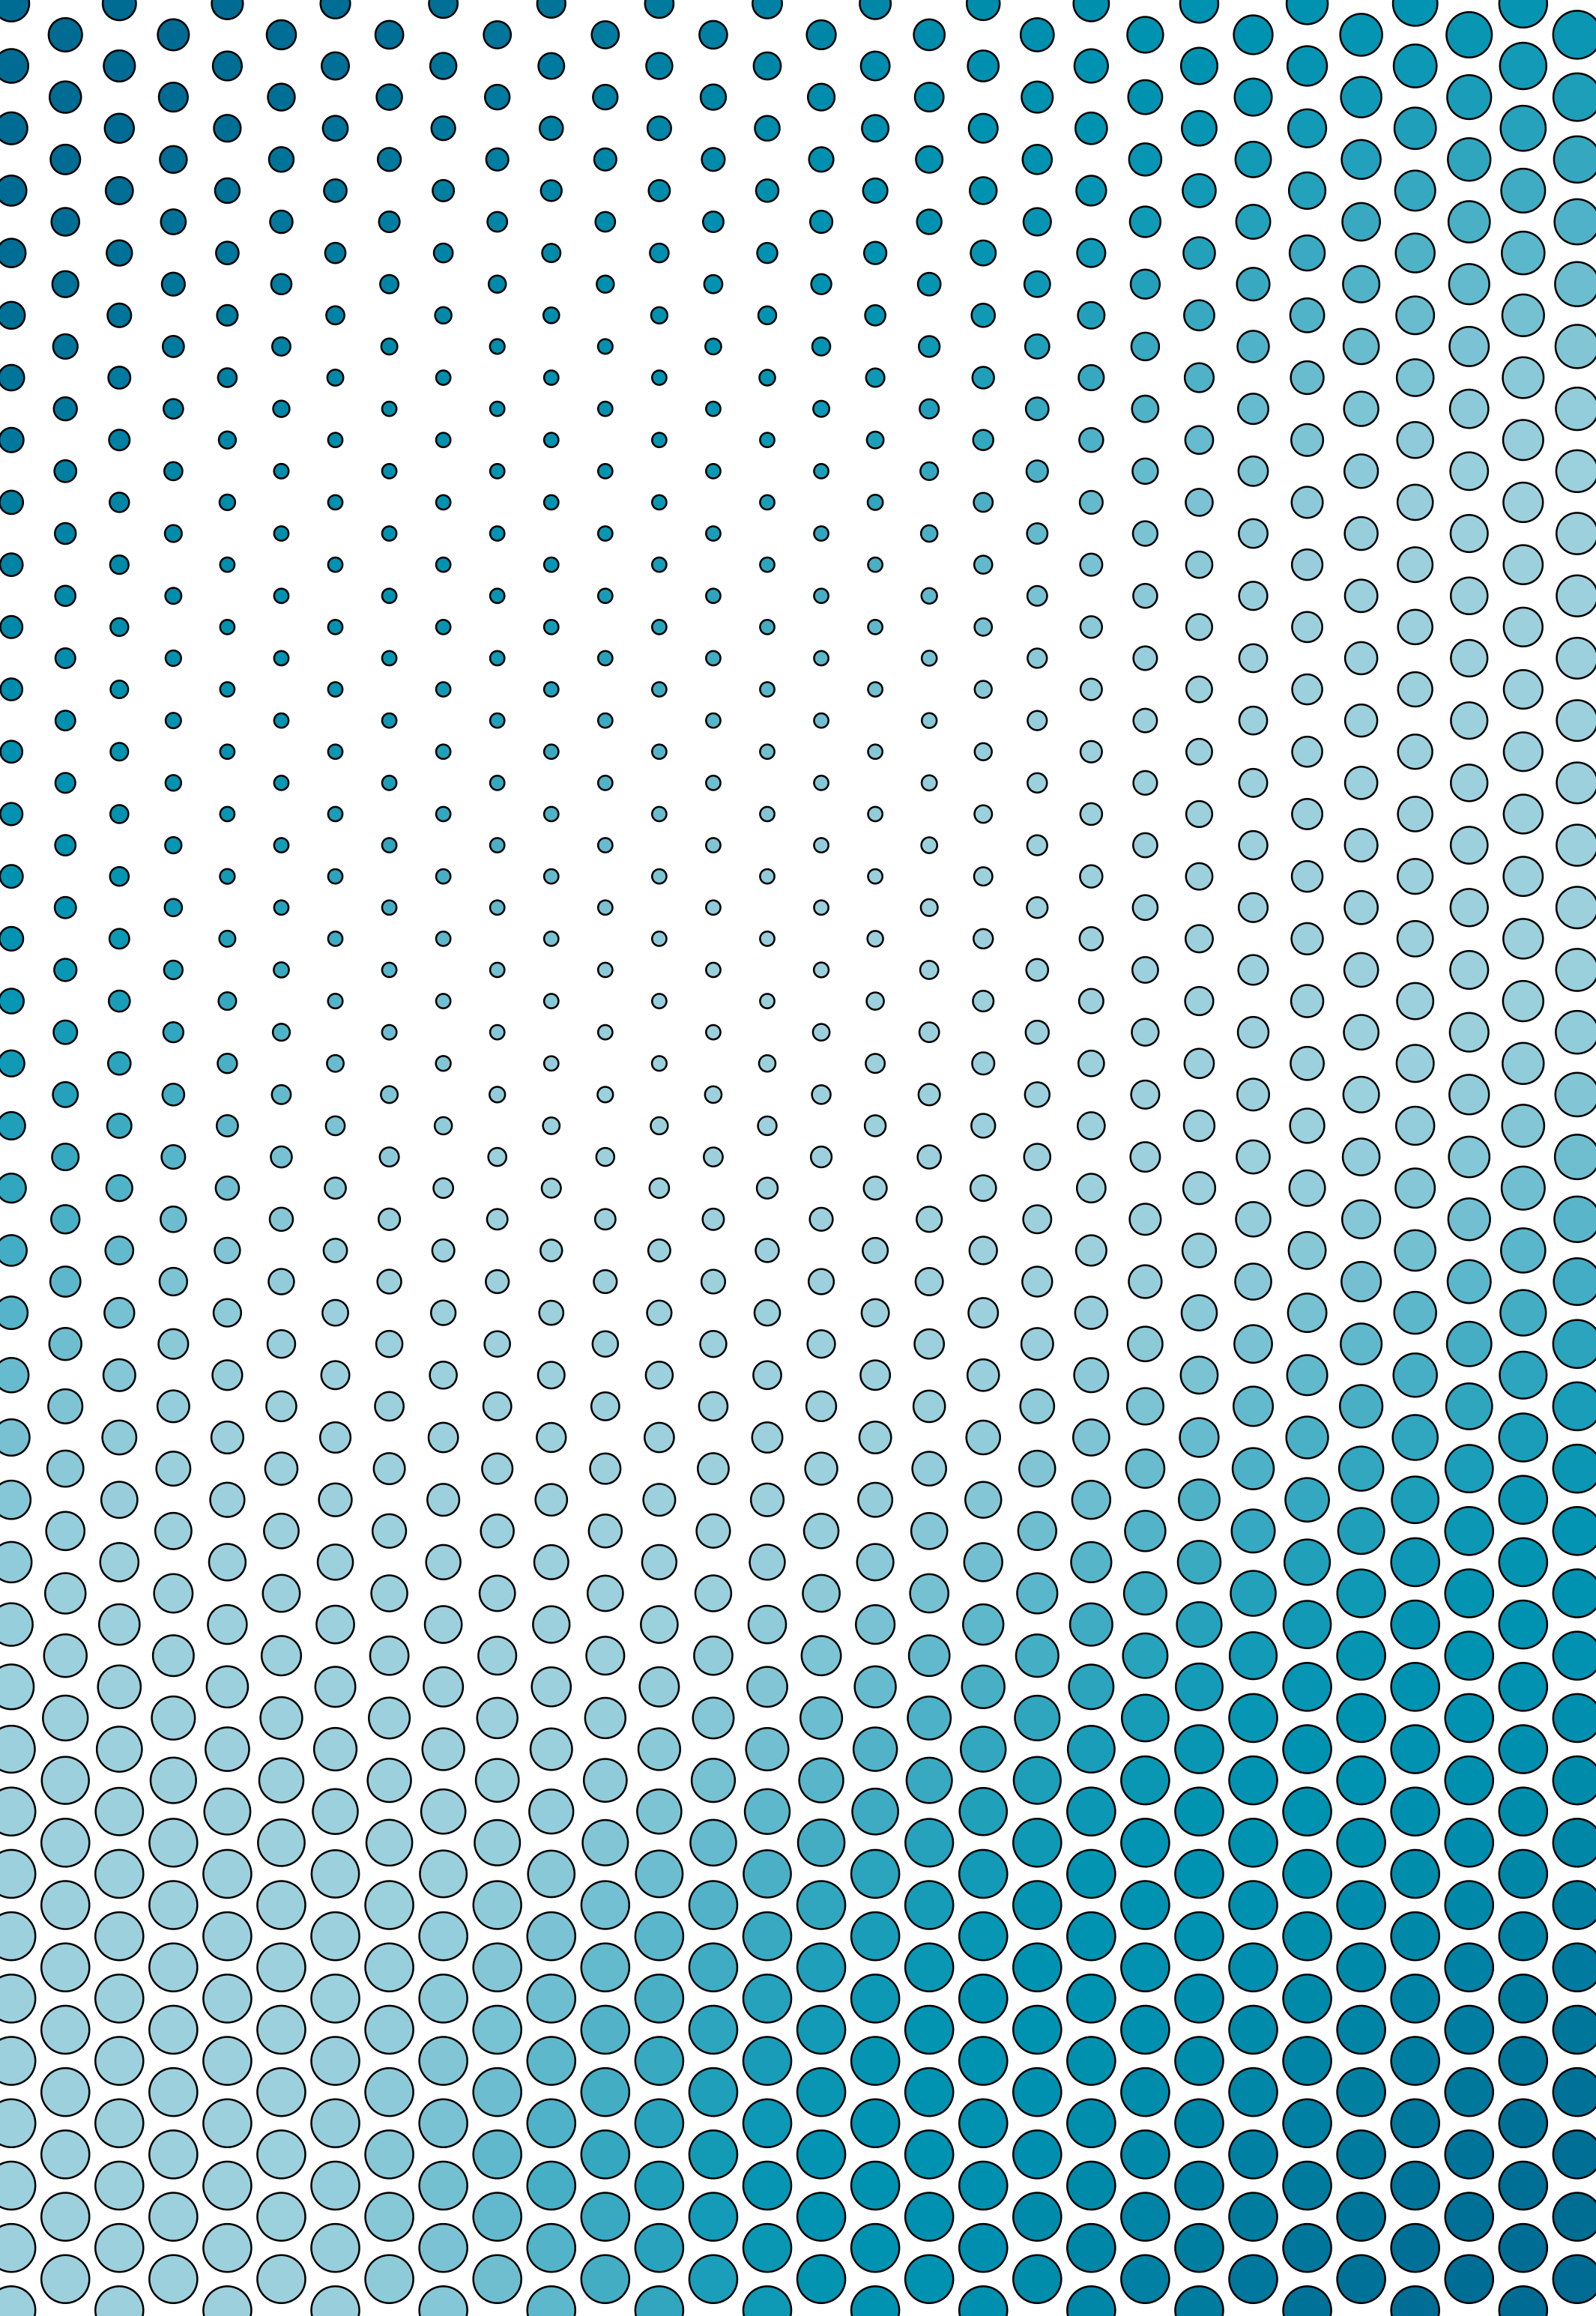 tessellation vector architectural